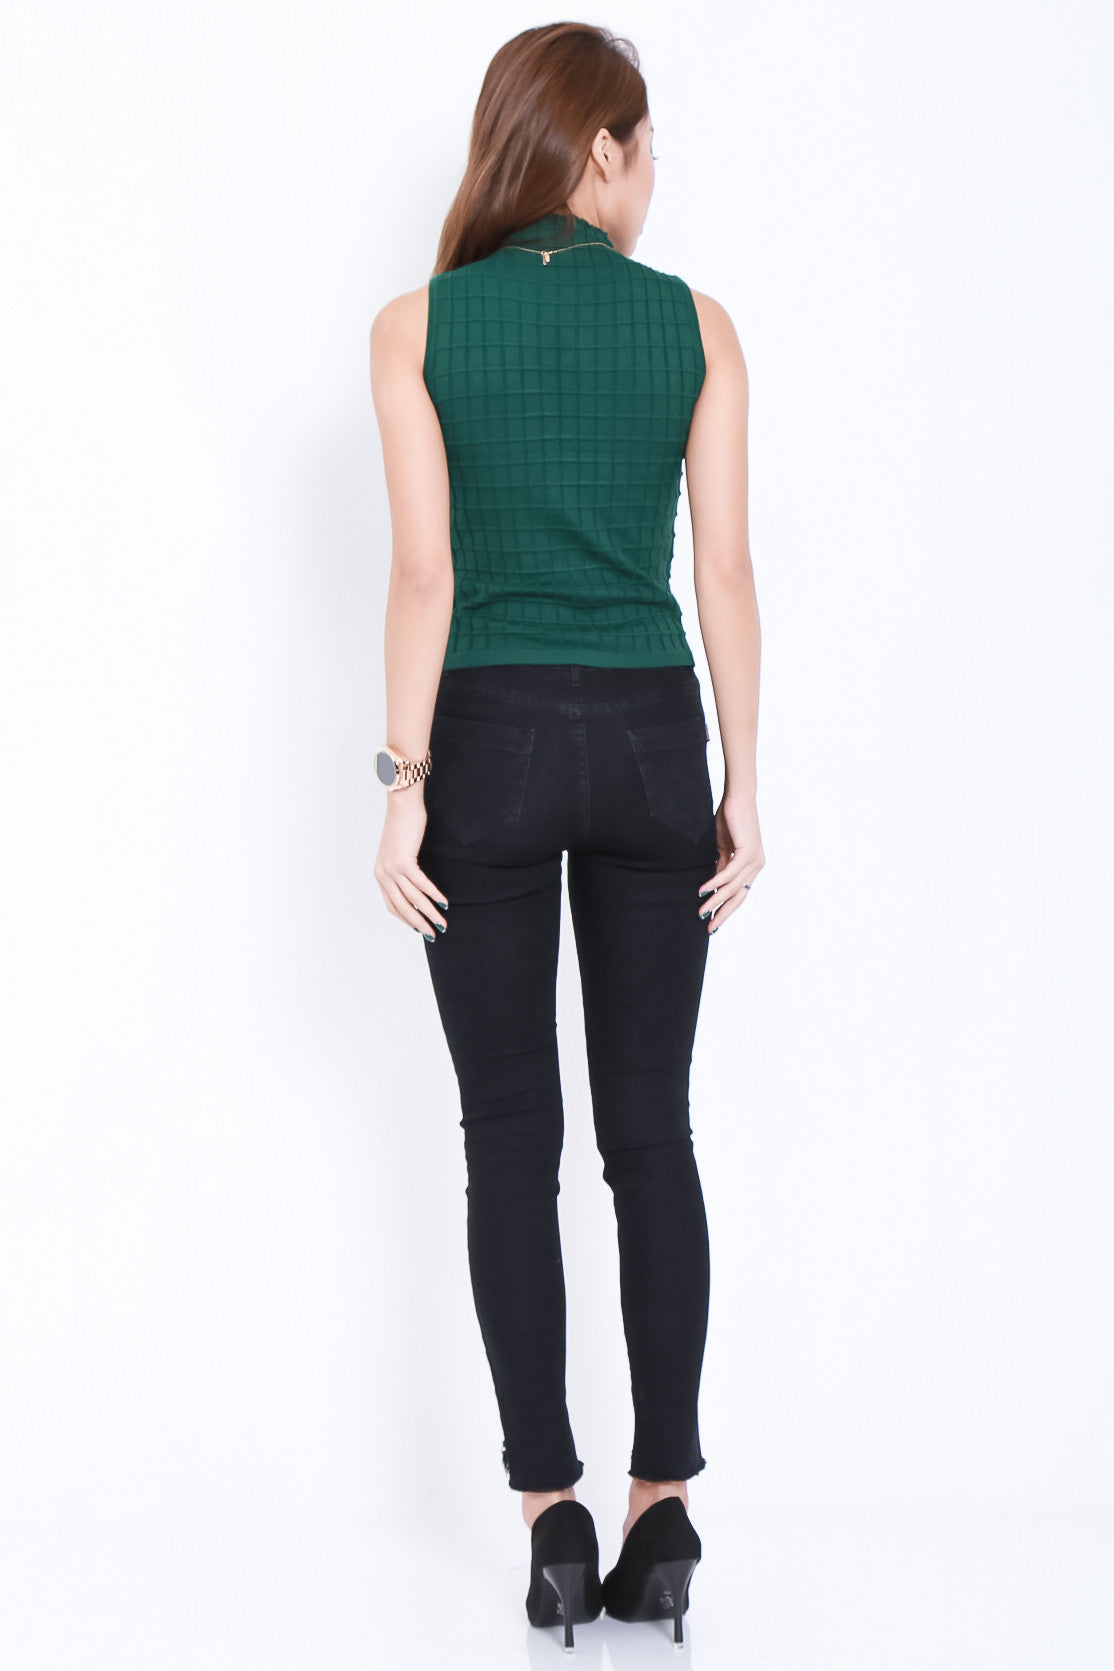 (RESTOCKED) HIGH CHECKS KNIT TOP IN FOREST - TOPAZETTE